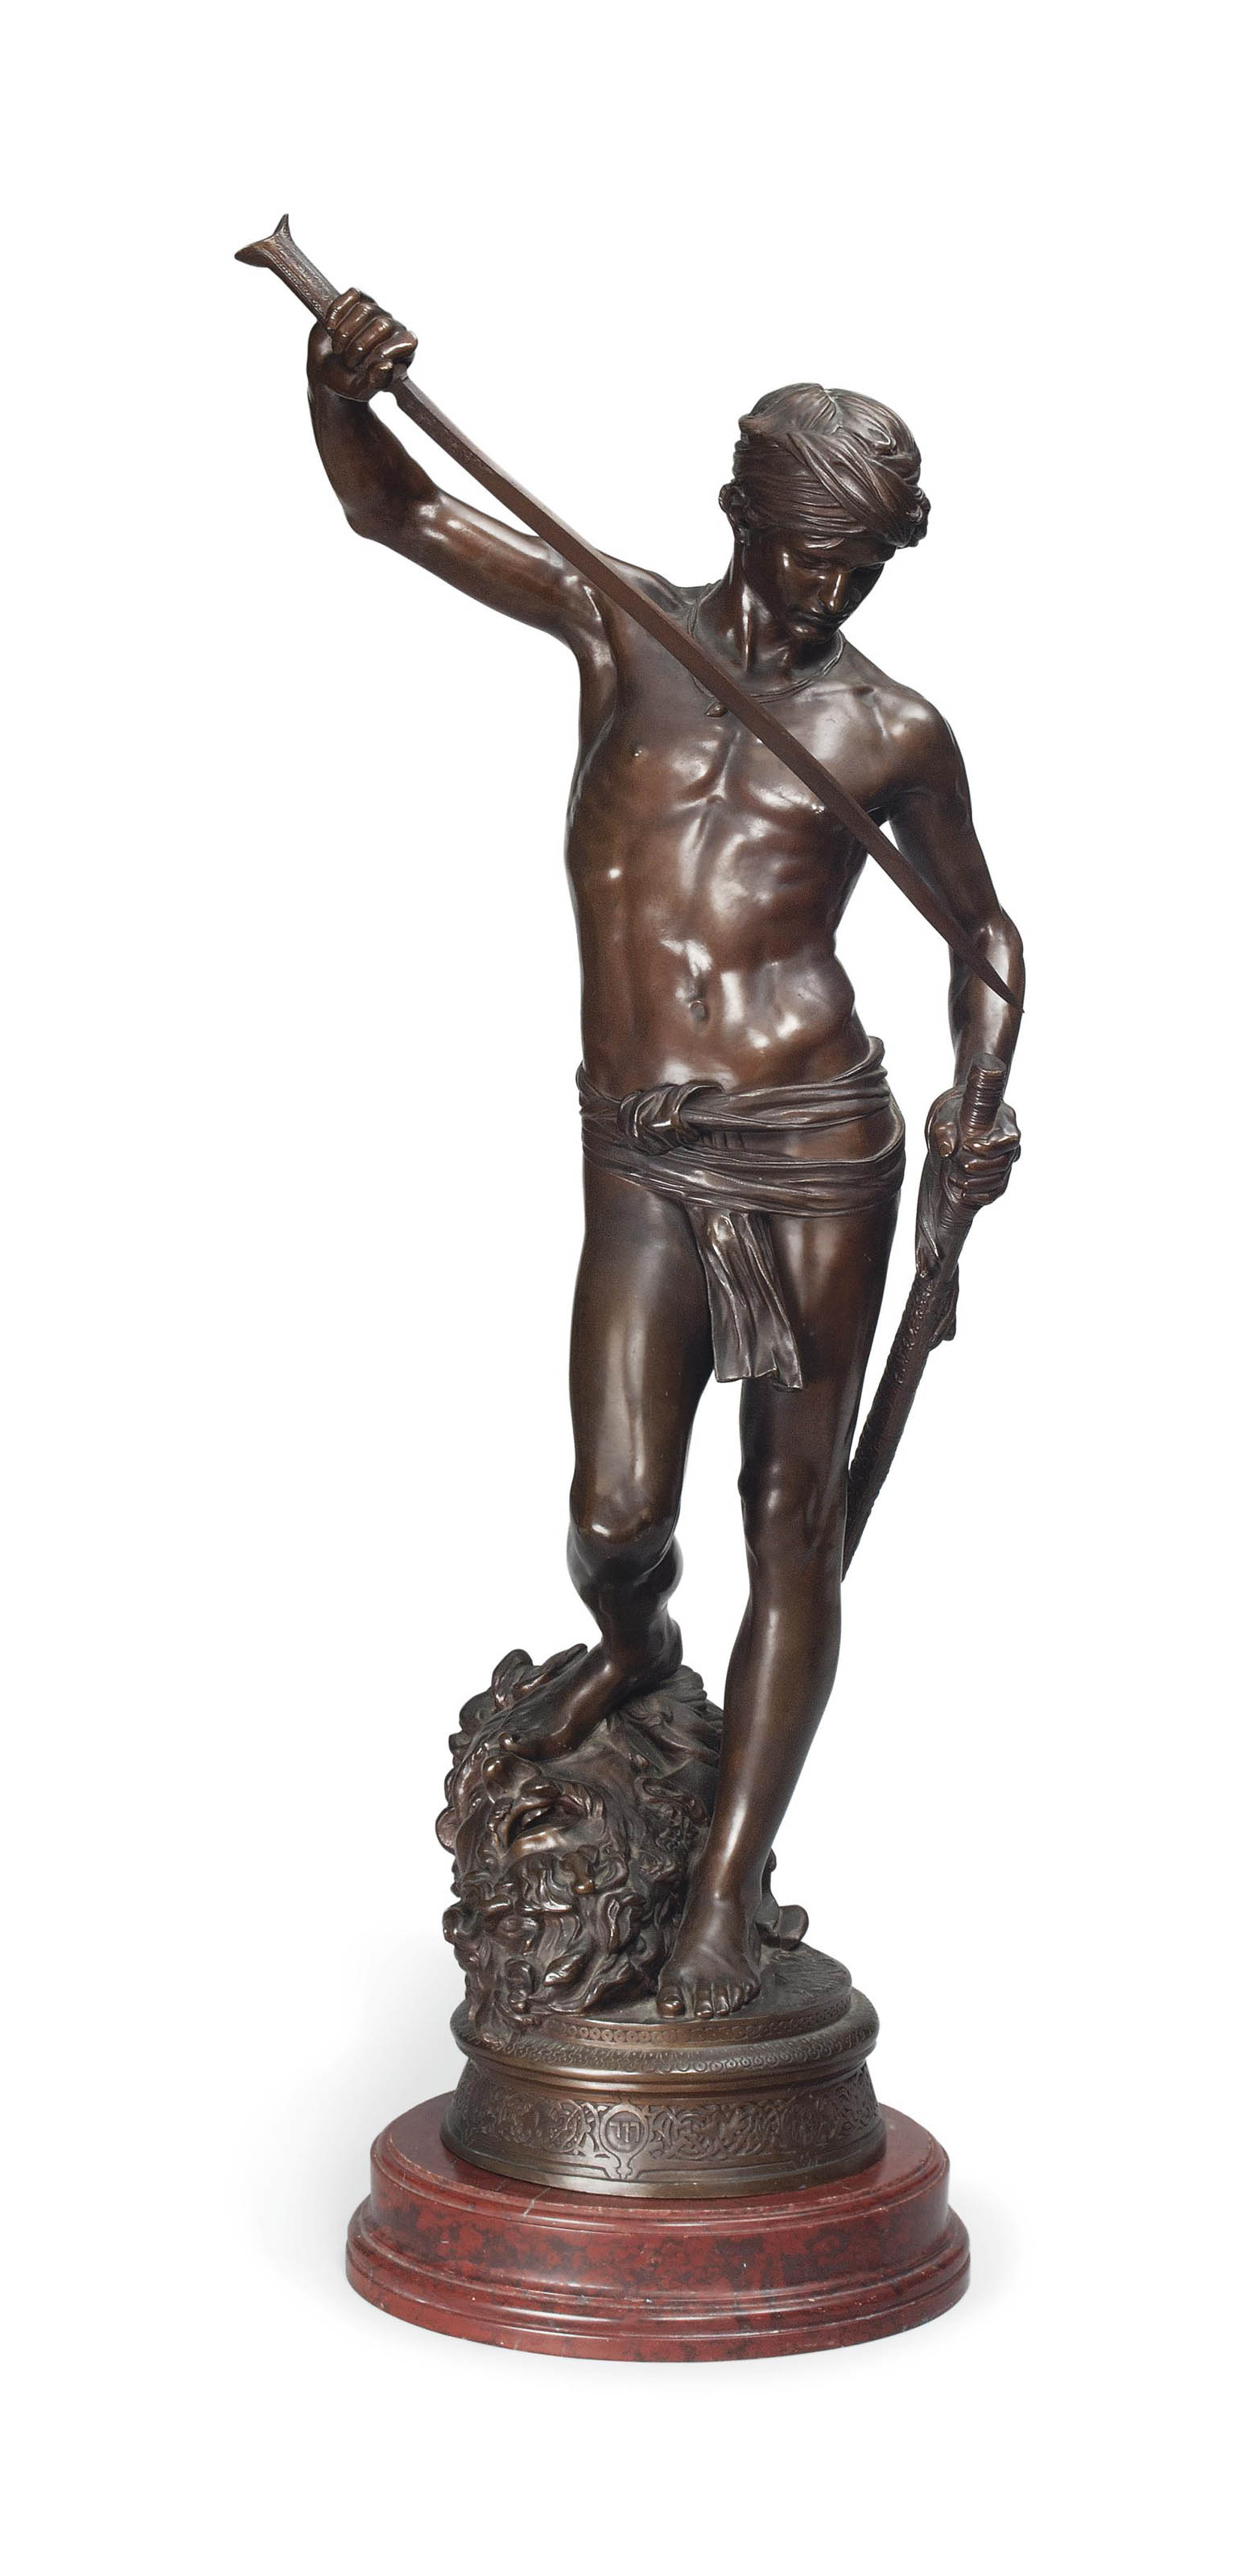 A FRENCH BRONZE FIGURE OF 'DAVID VAINQUER'